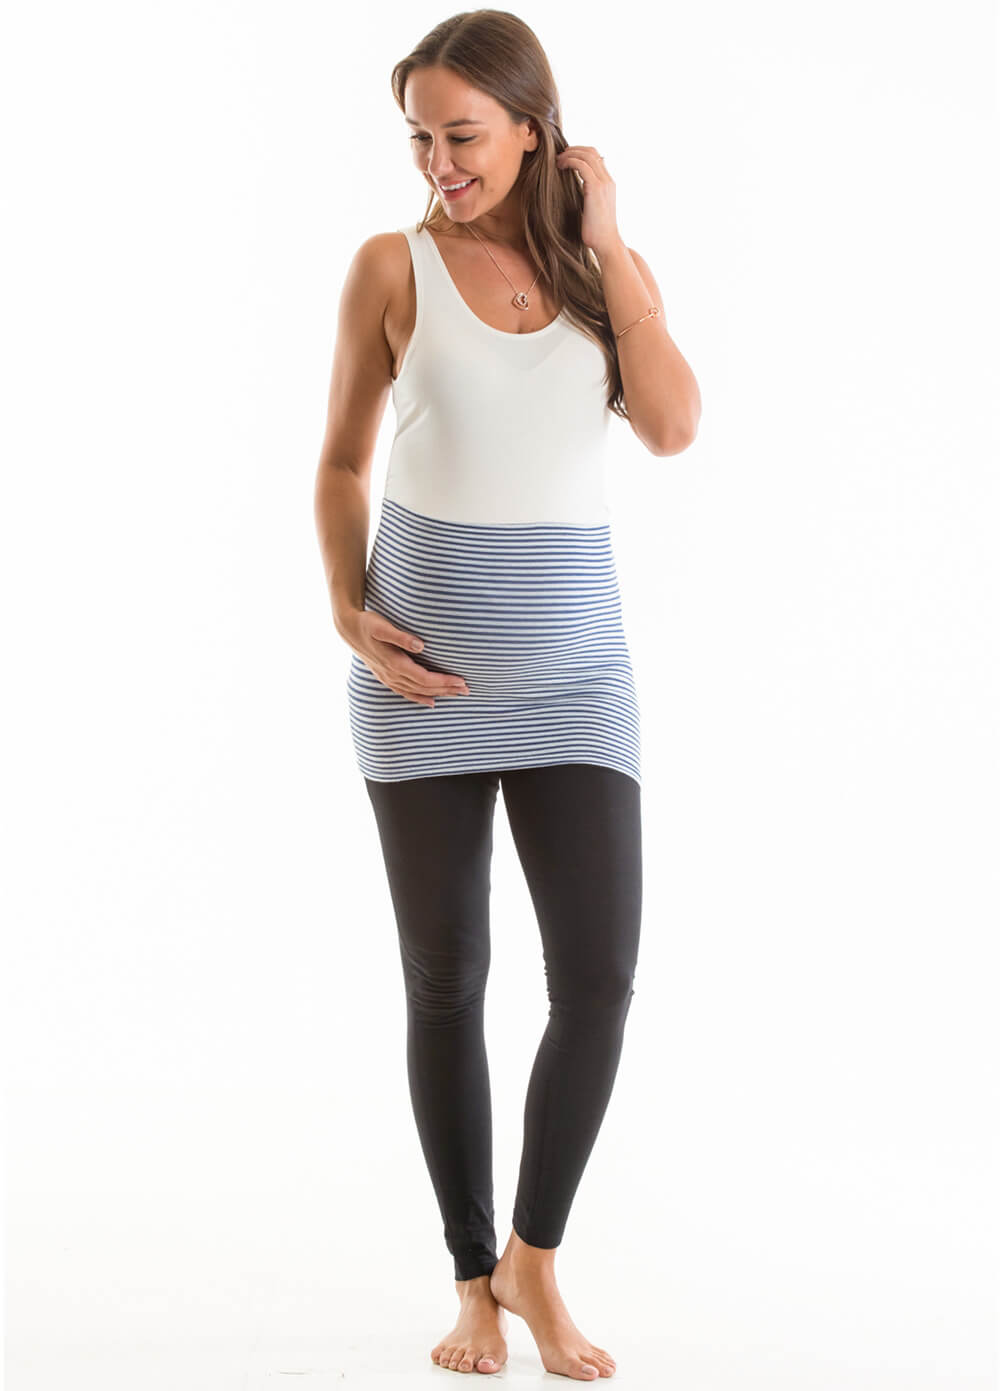 Ellia Maternity Belly Band in Navy Stripes by Queen Bee